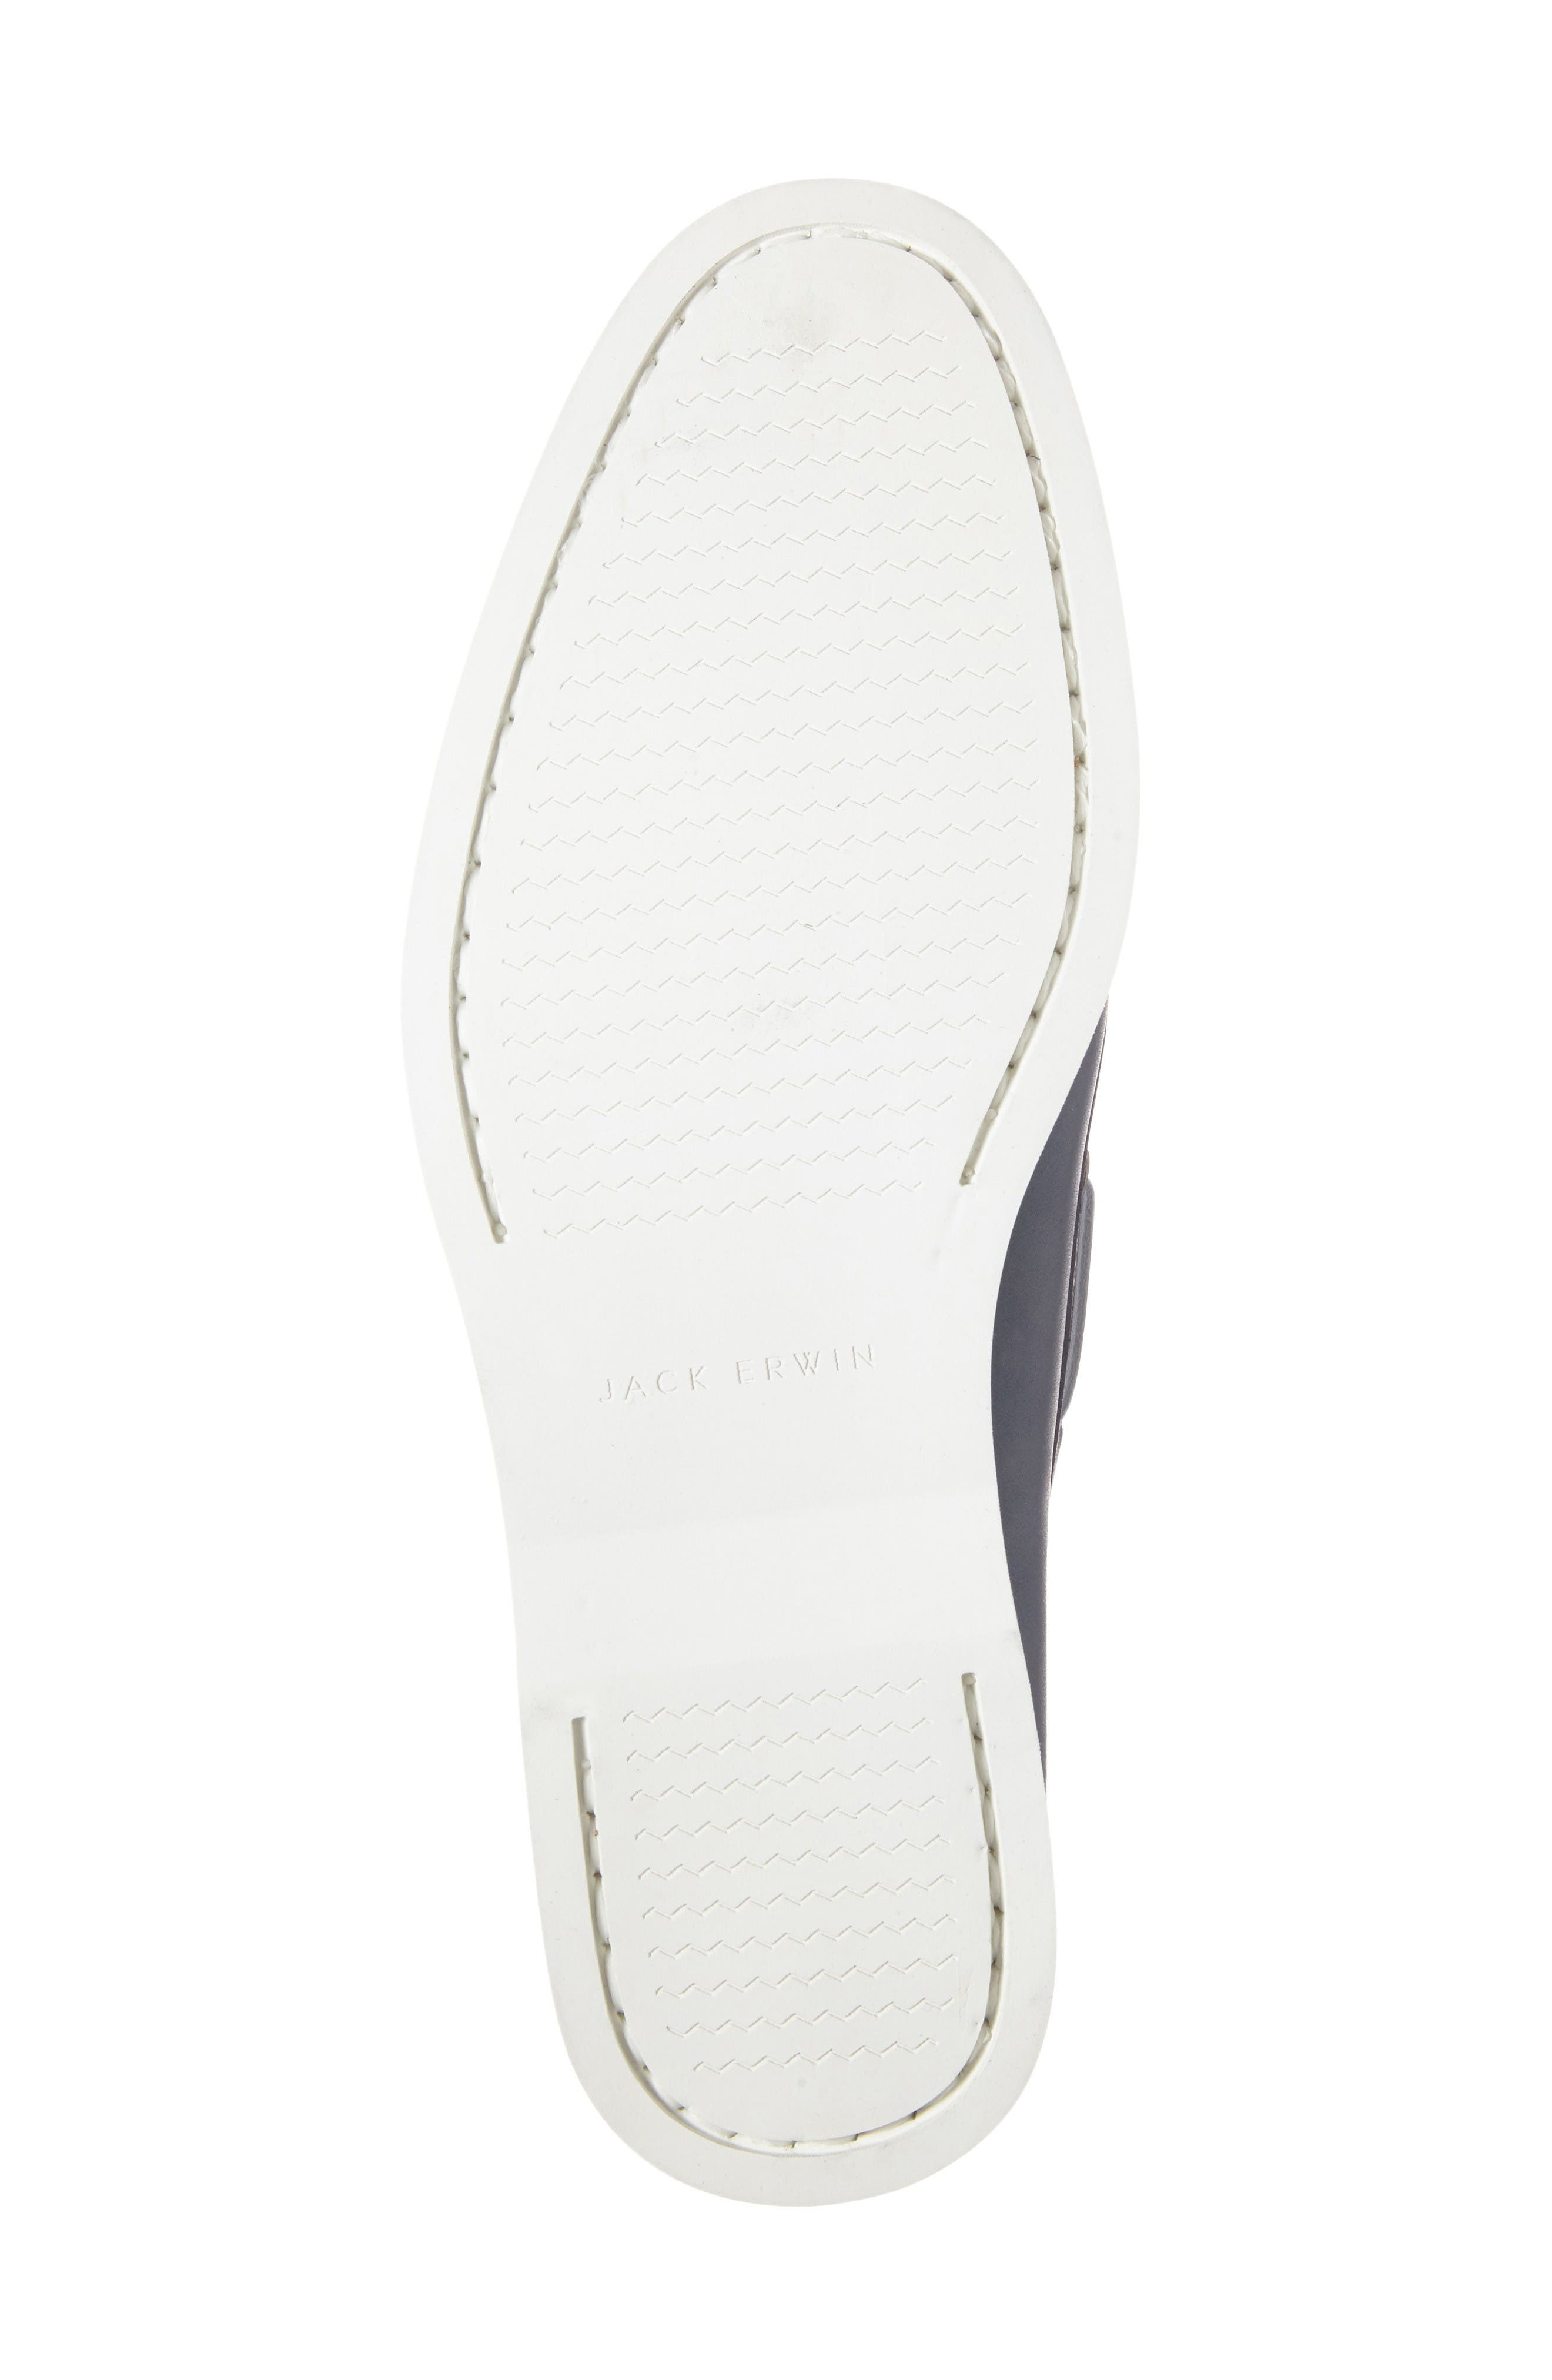 Cooper Boat Shoe,                             Alternate thumbnail 4, color,                             Navy Leather